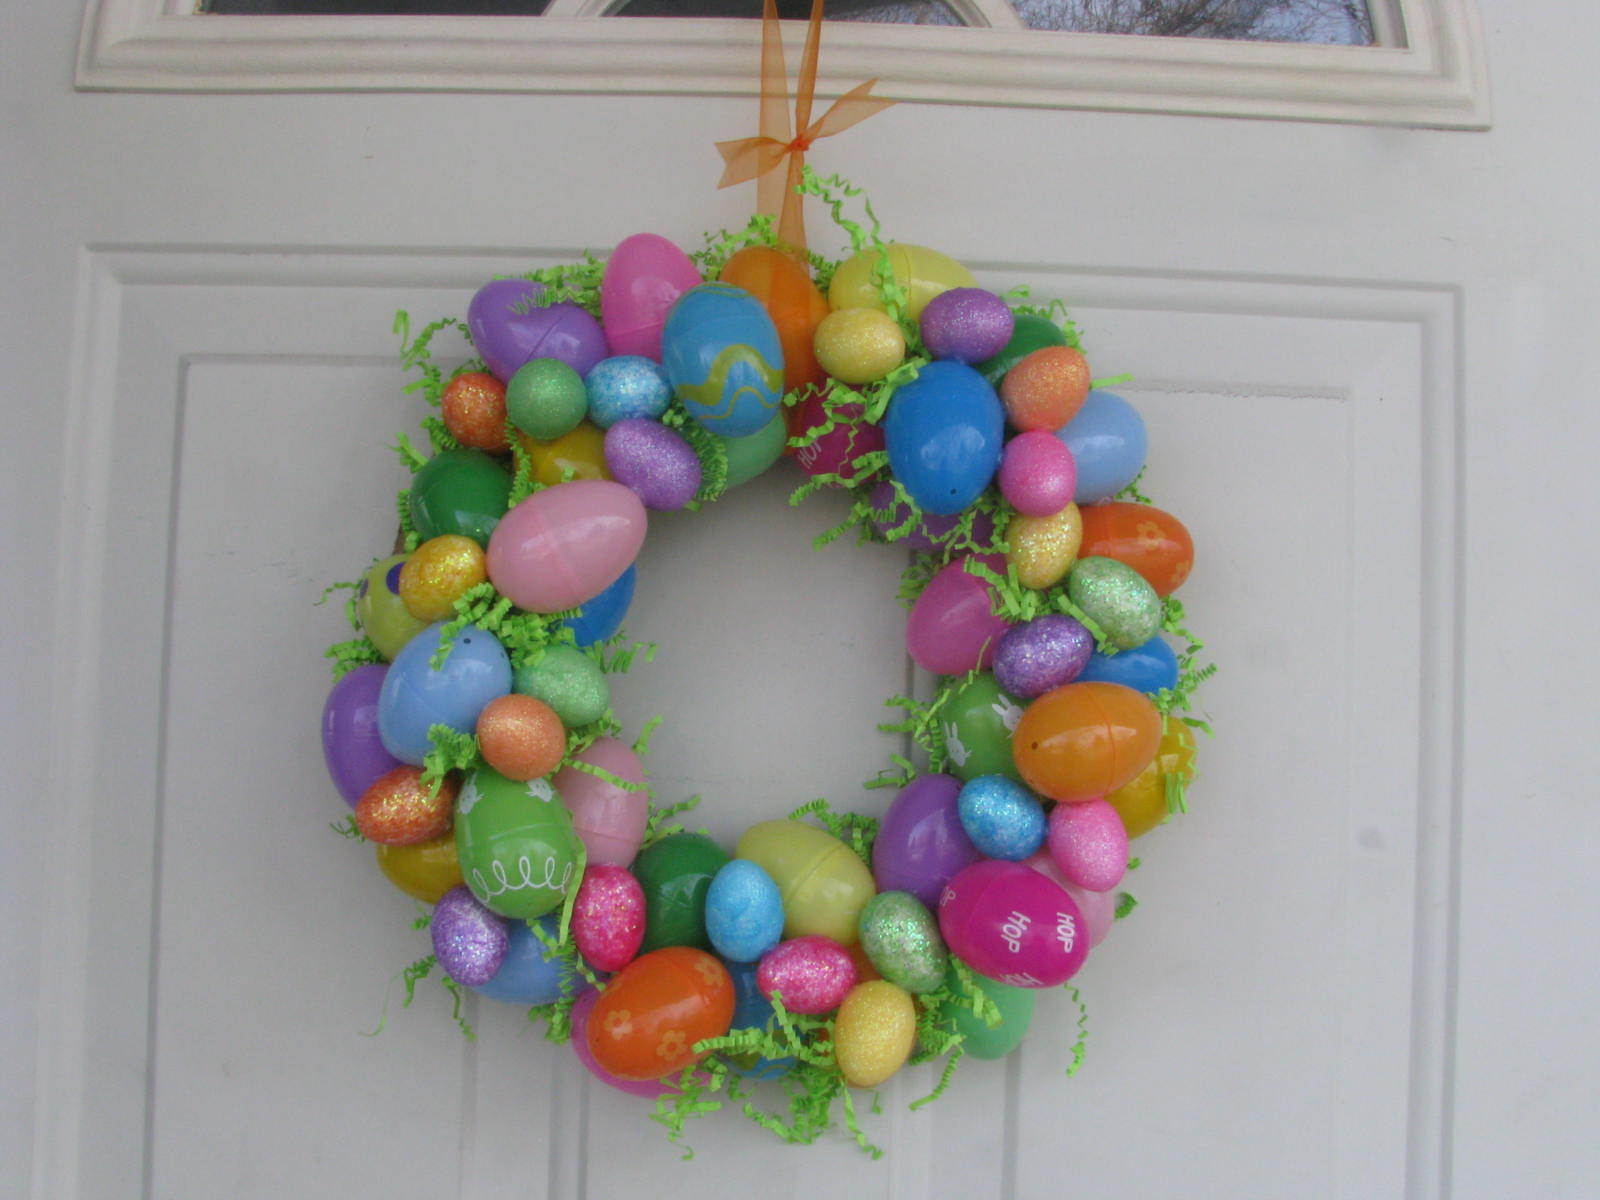 Collard Greens & Homemade Things: Easter Egg Wreath